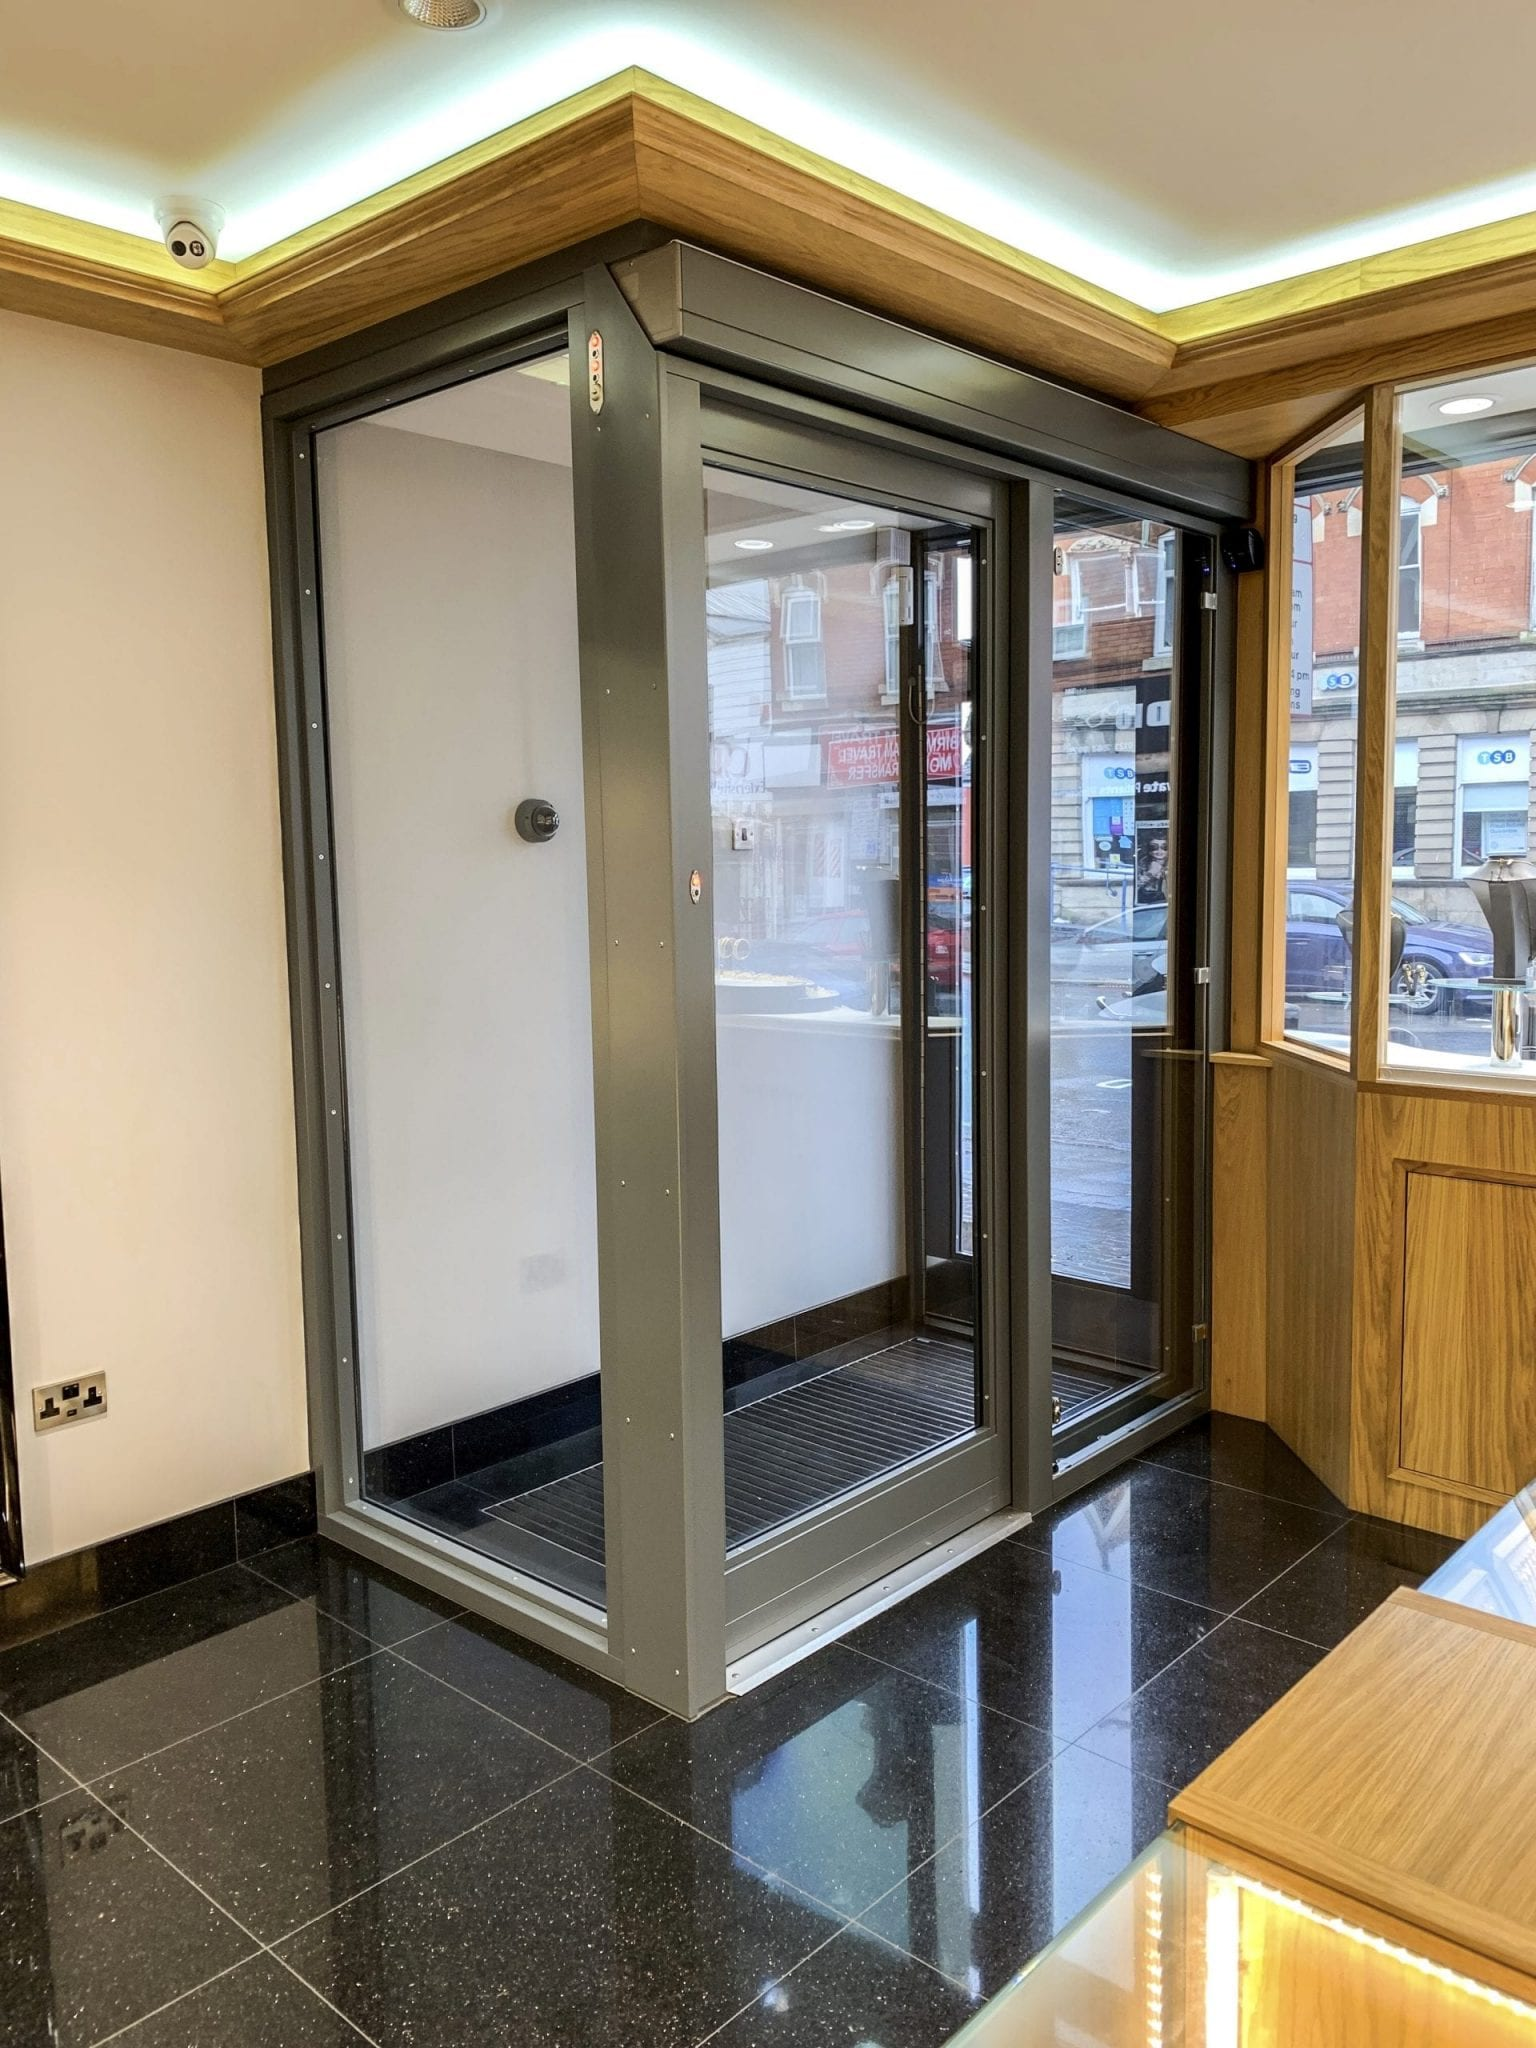 Warrior Fully Glazed Interlocking Doors with a Swing Door & Sliding Door Combination